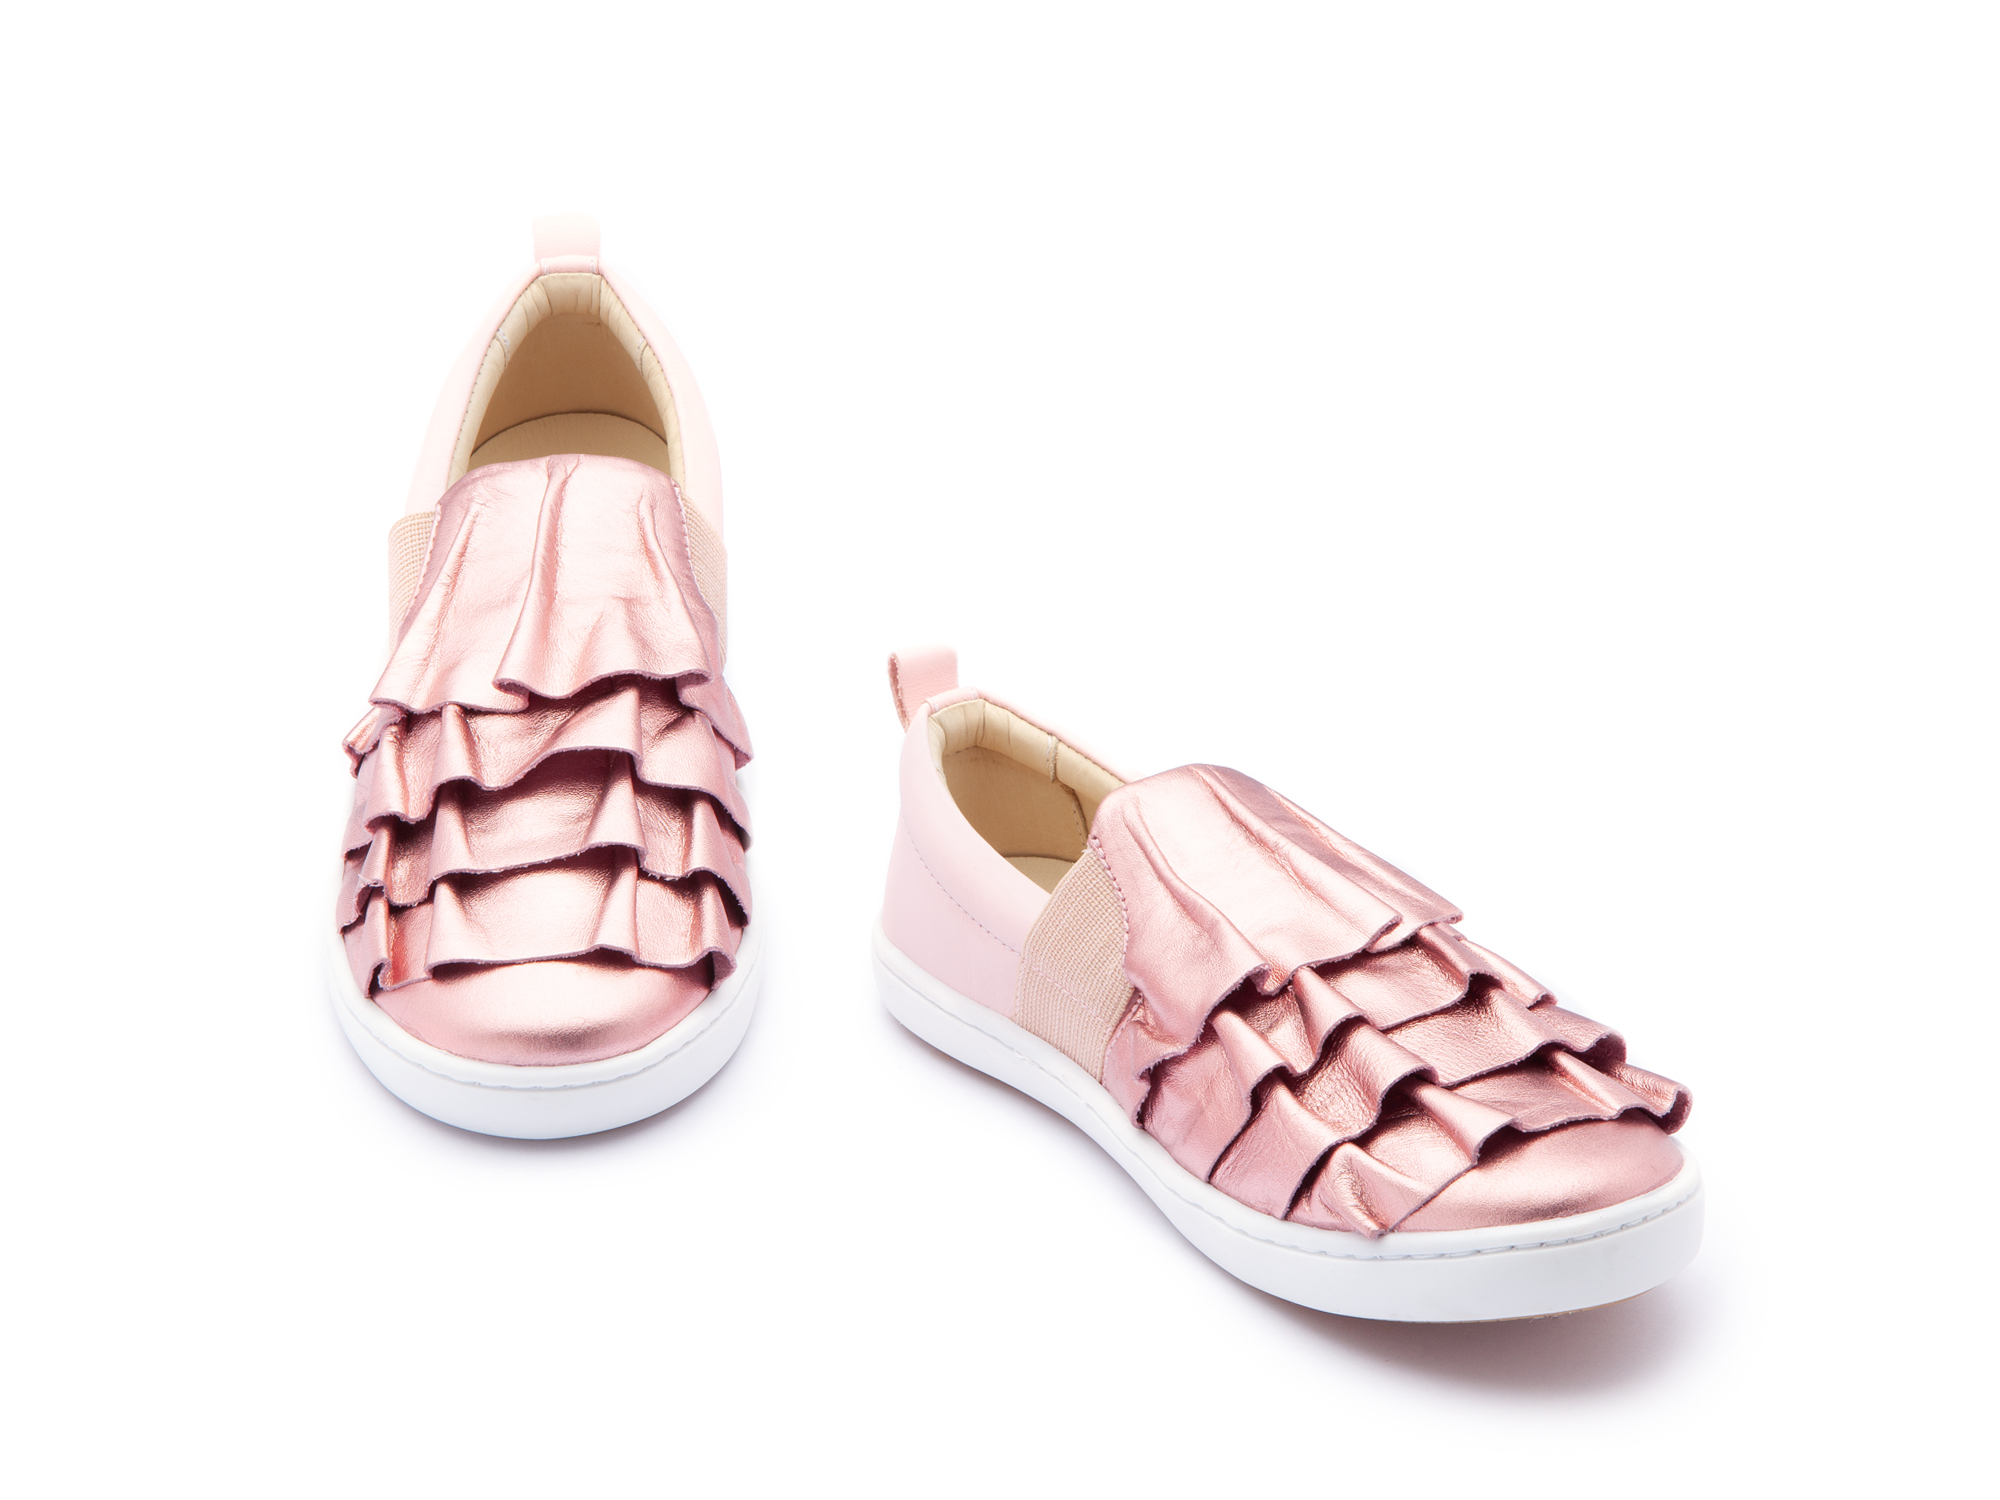 Tênis Flamenco Rose Gold/ Blossom Pink Junior 4 à 8 anos - 1